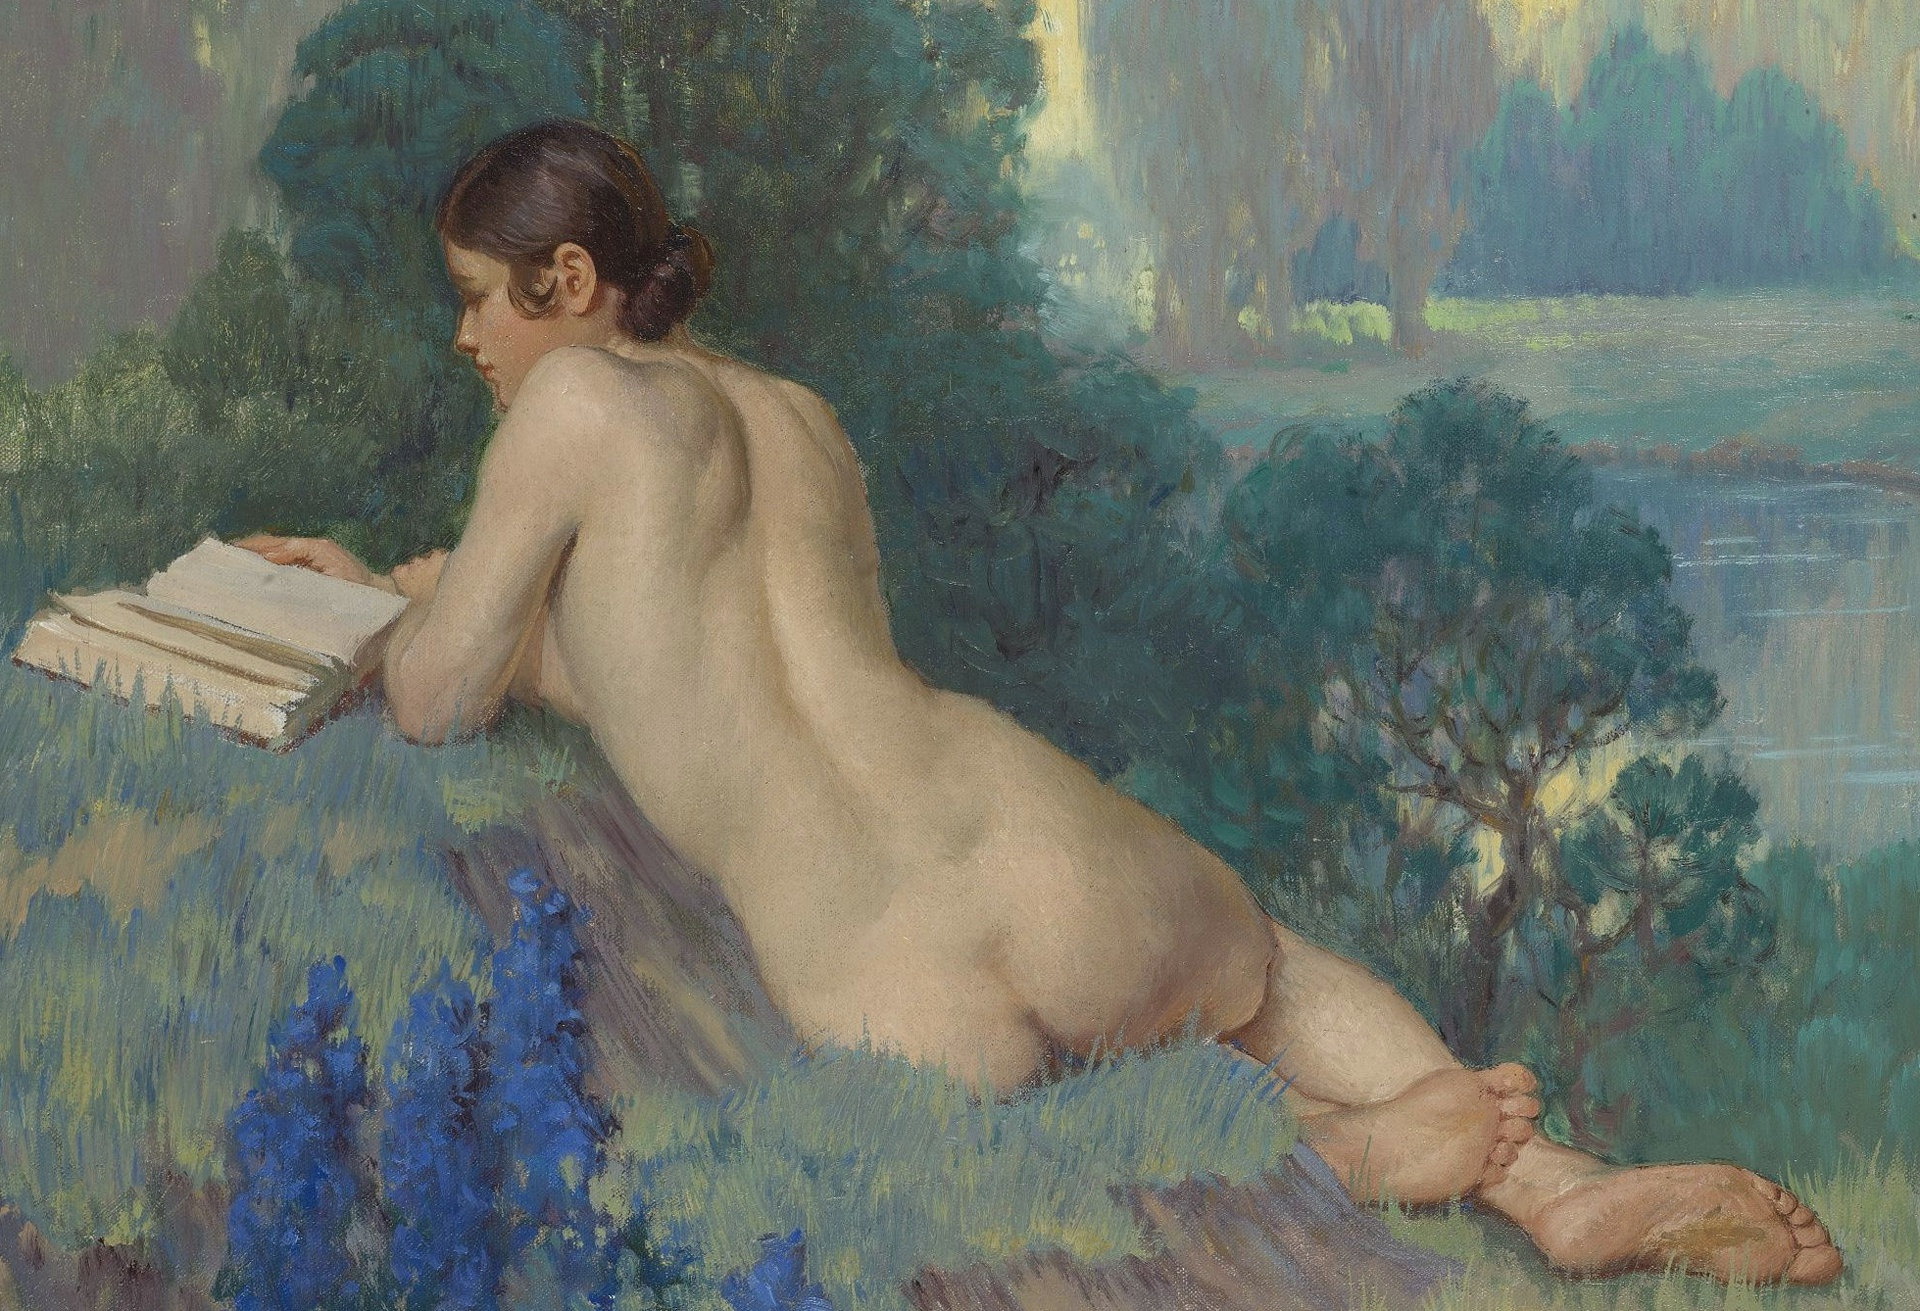 In conversation with blanca schofield legorburo, the artist behind eve taking a nude